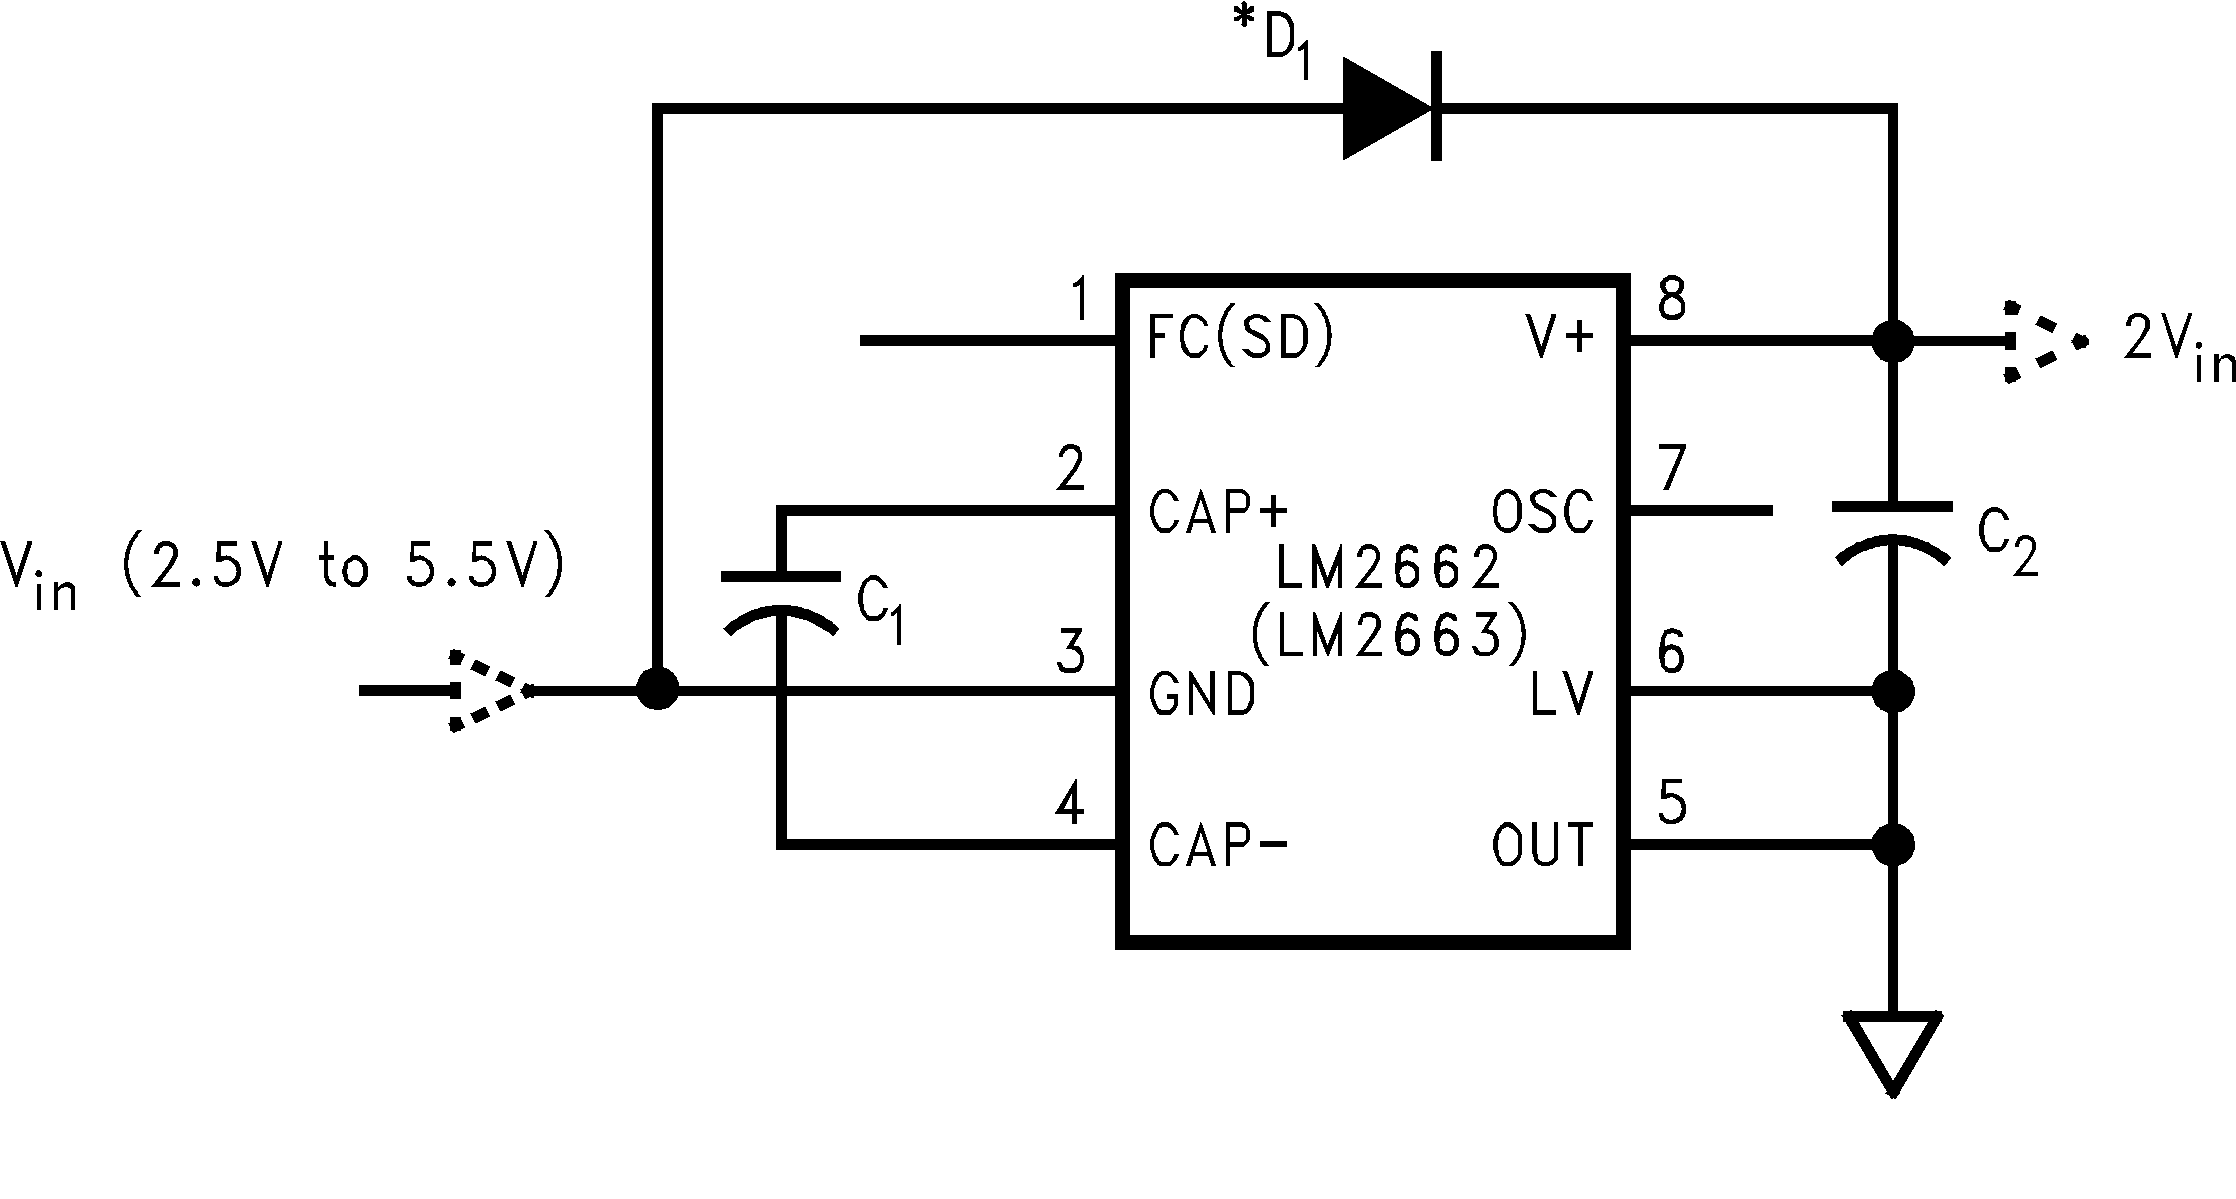 Lm2663 Voltage Multiplier With Diodes And Capacitors 922 Positive Doubler